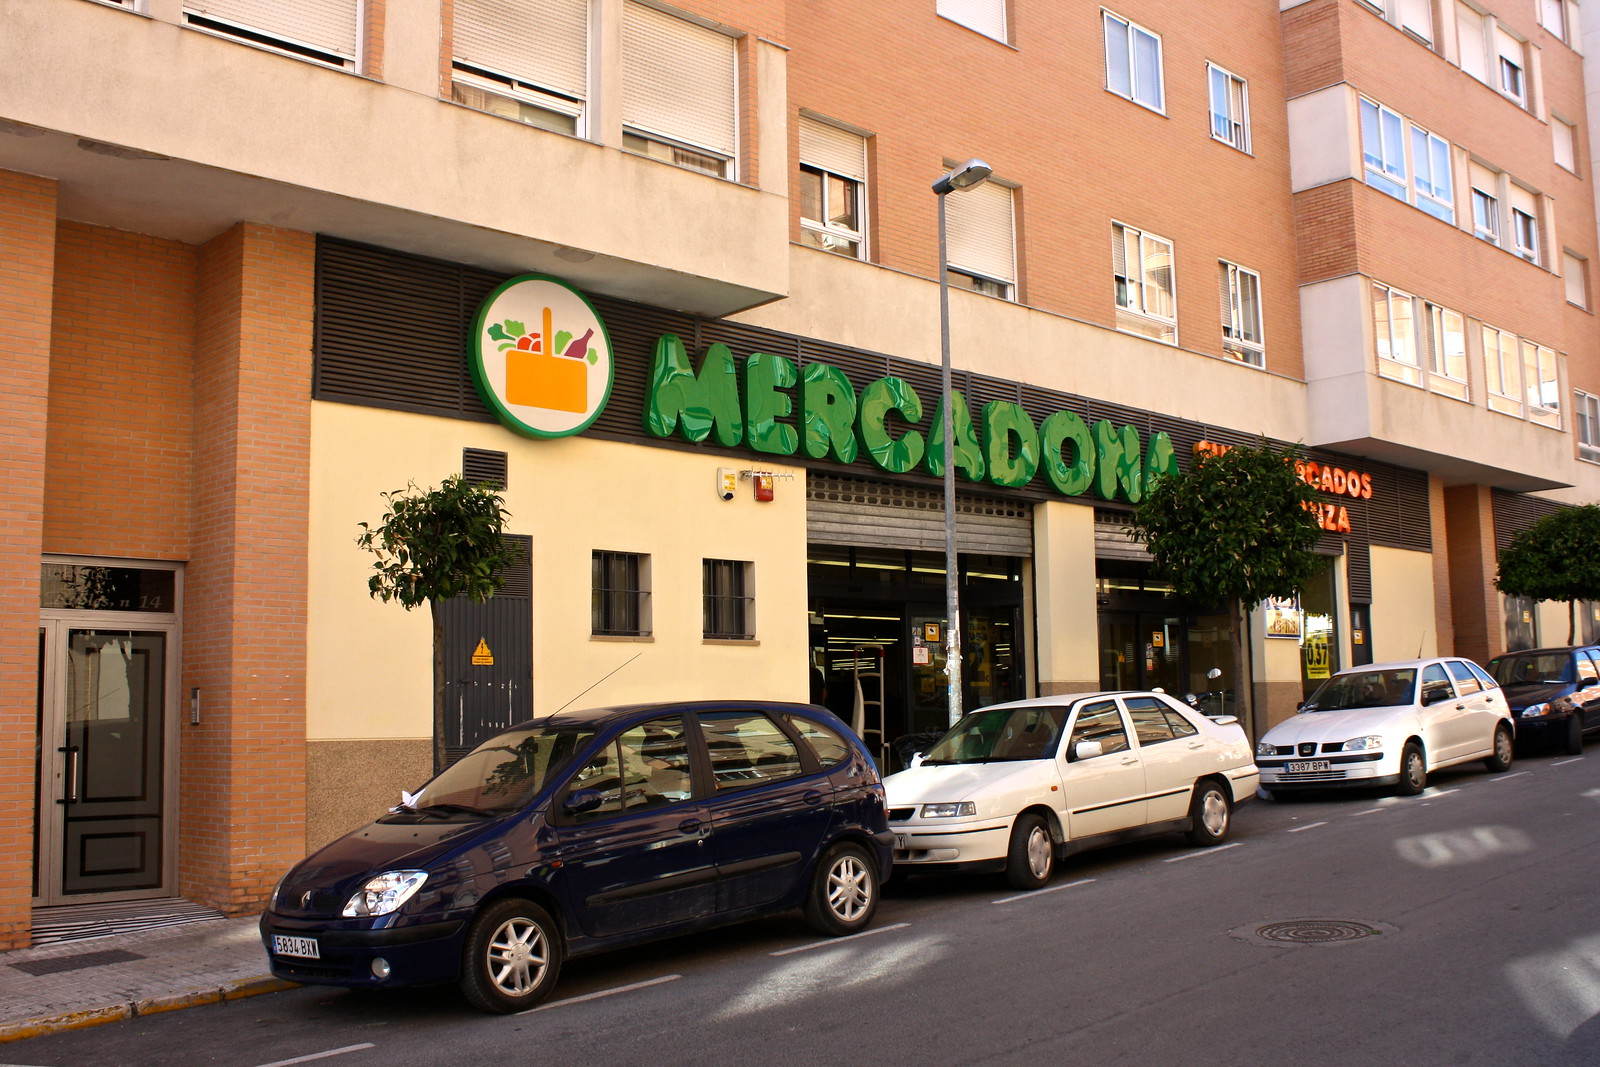 Supermarkets in Spain